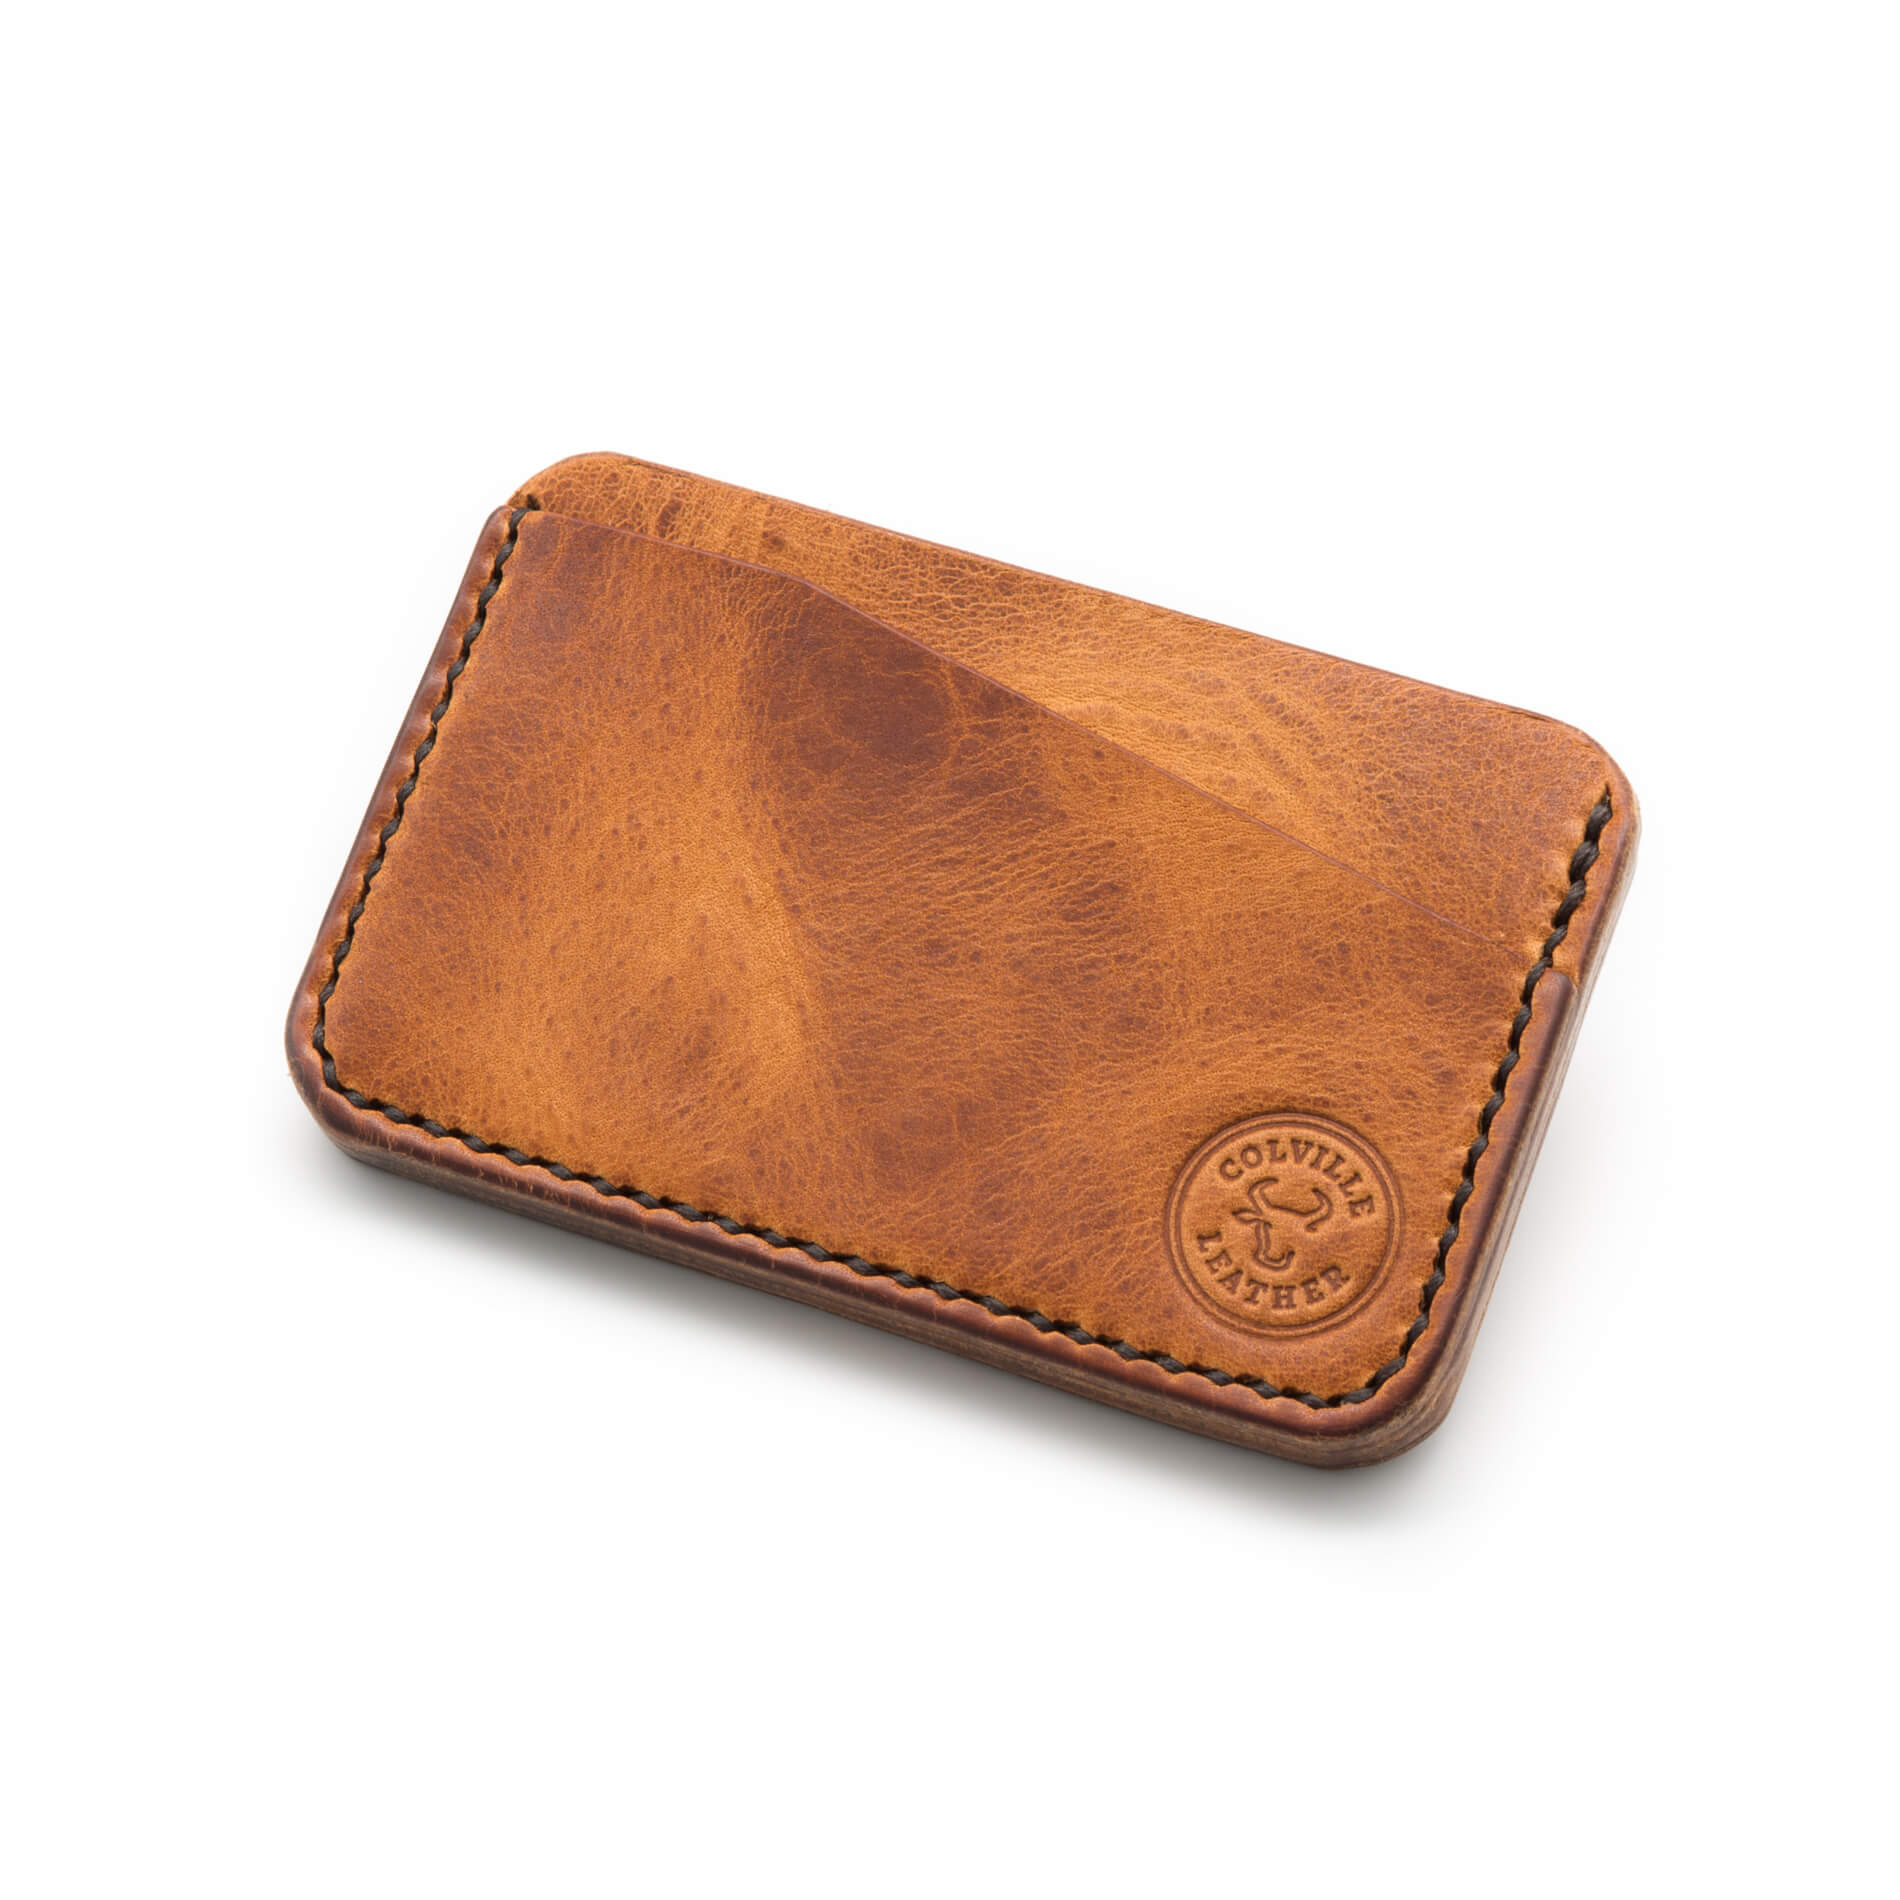 Leather wallet made in the famous Horween leather